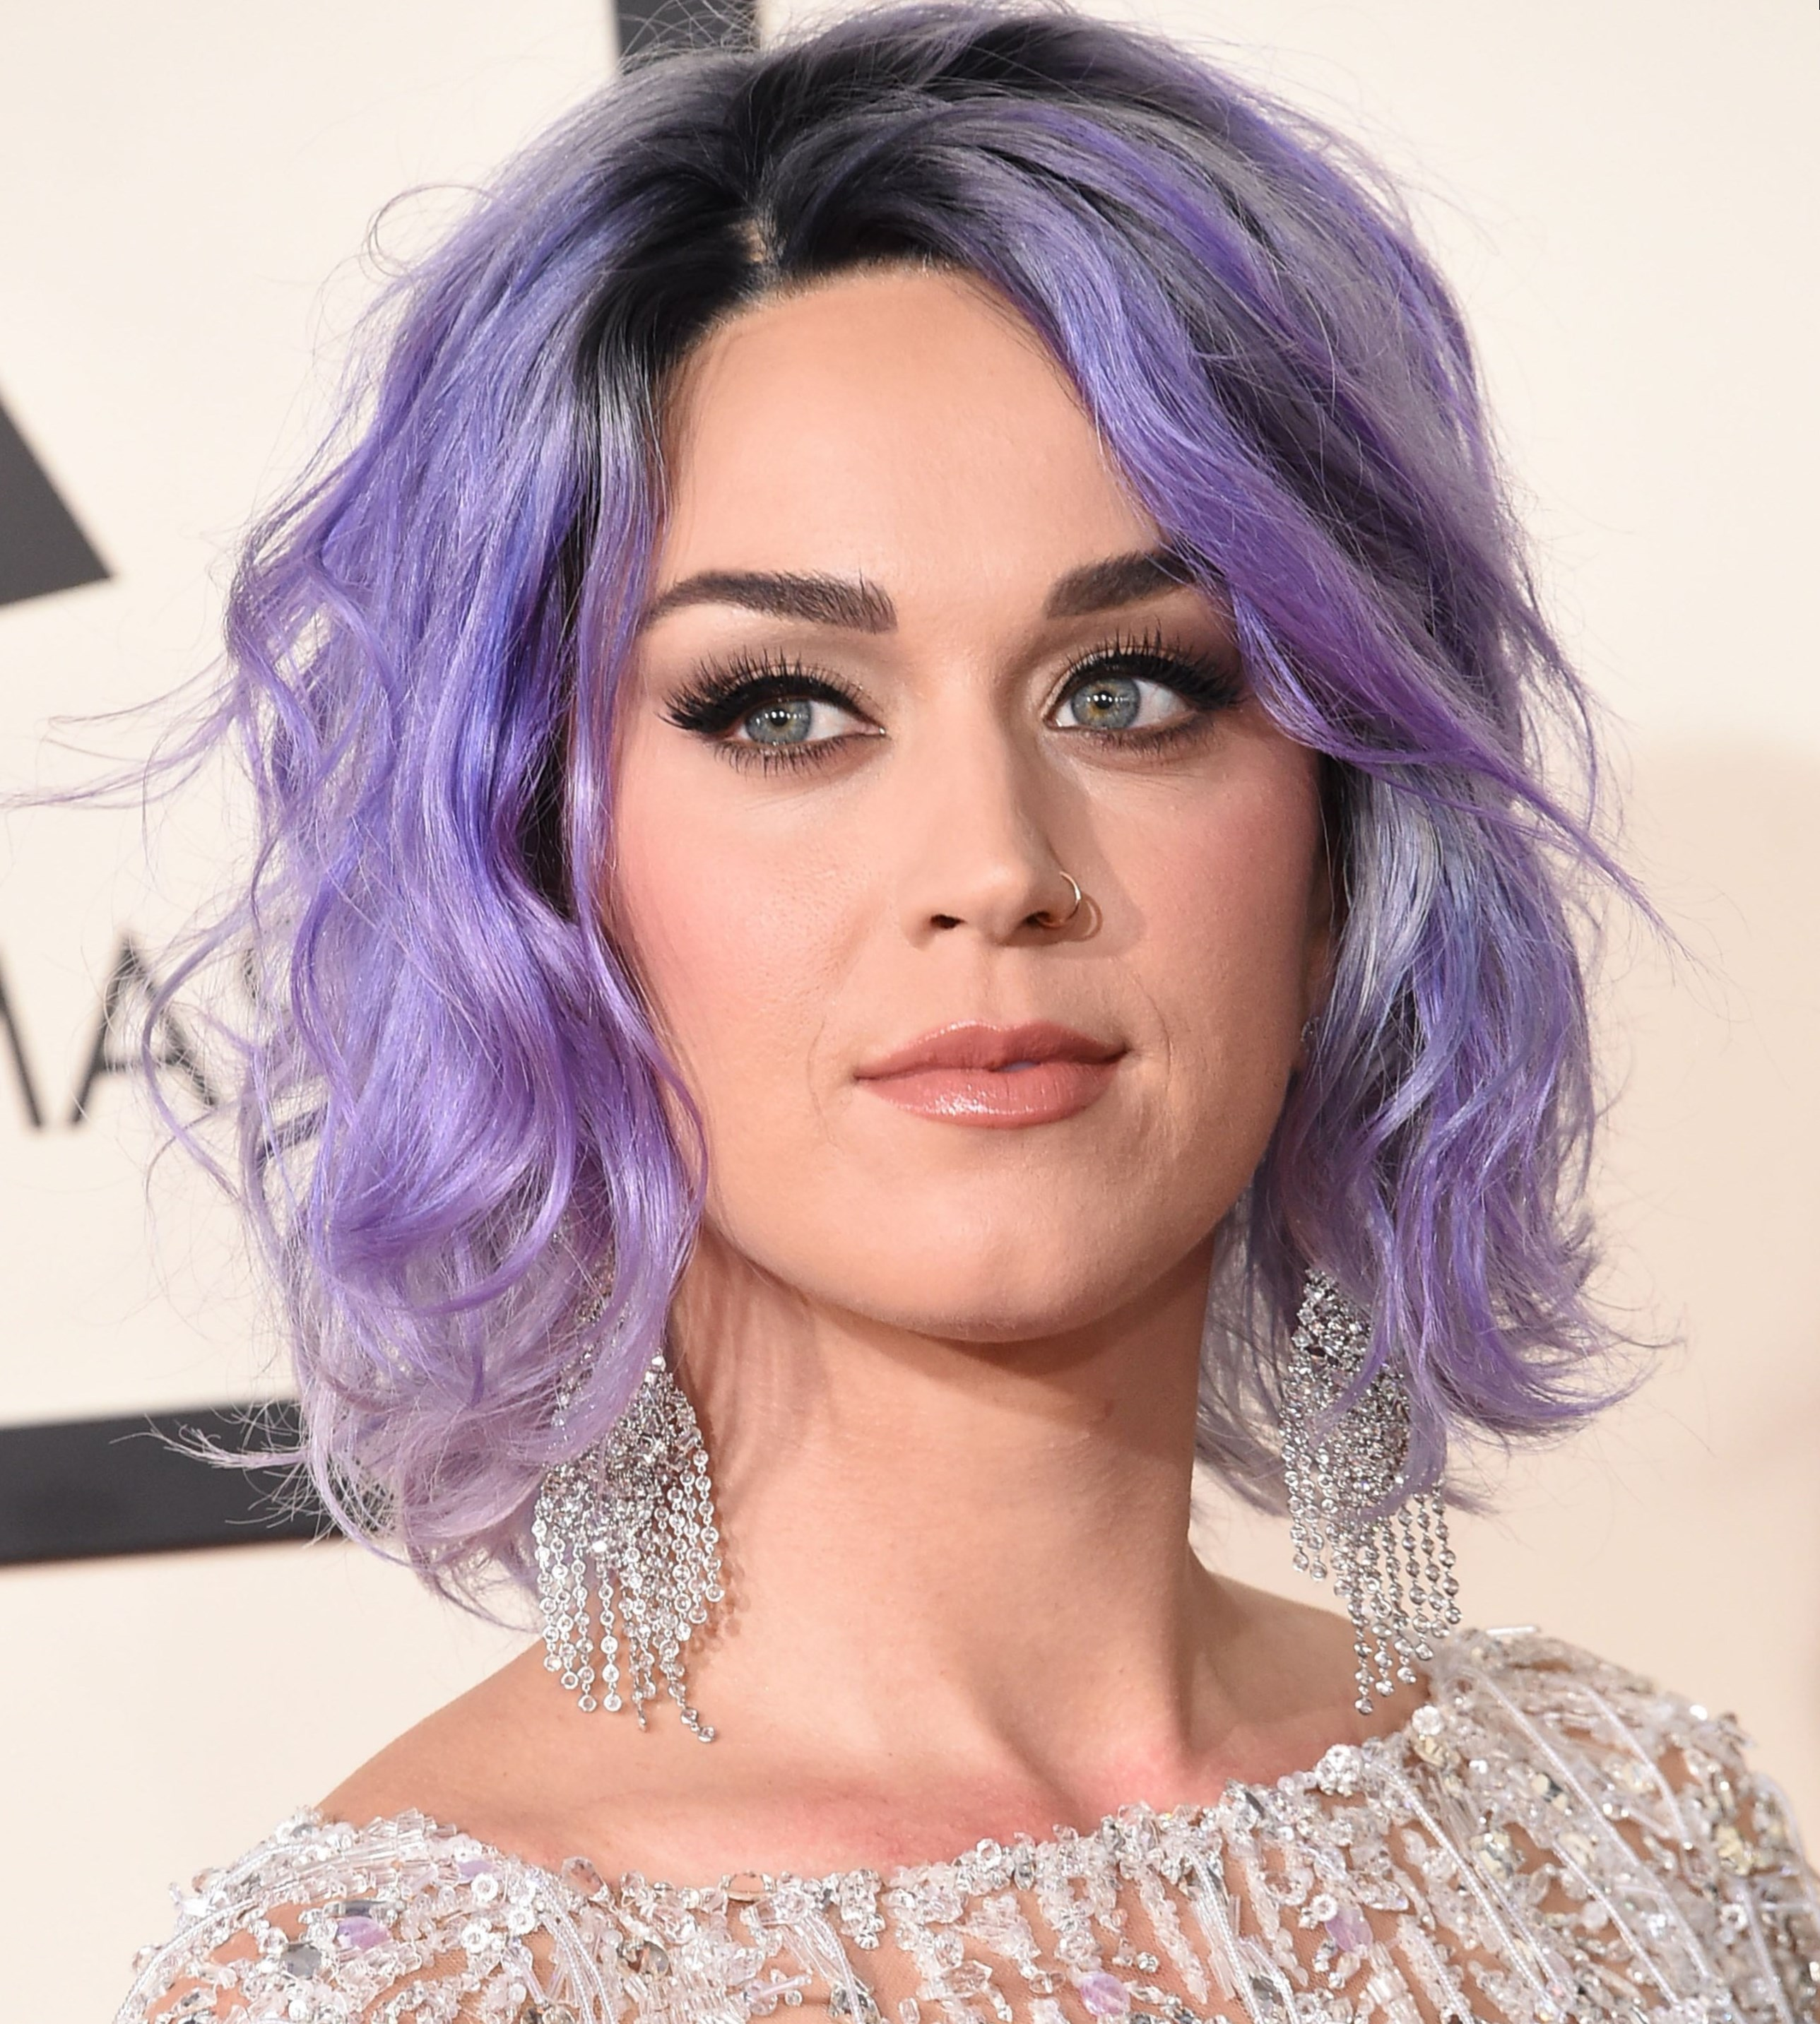 Fabulous Celebrity Katy Perry Hair Changes Photos Video Short Hairstyles For Black Women Fulllsitofus